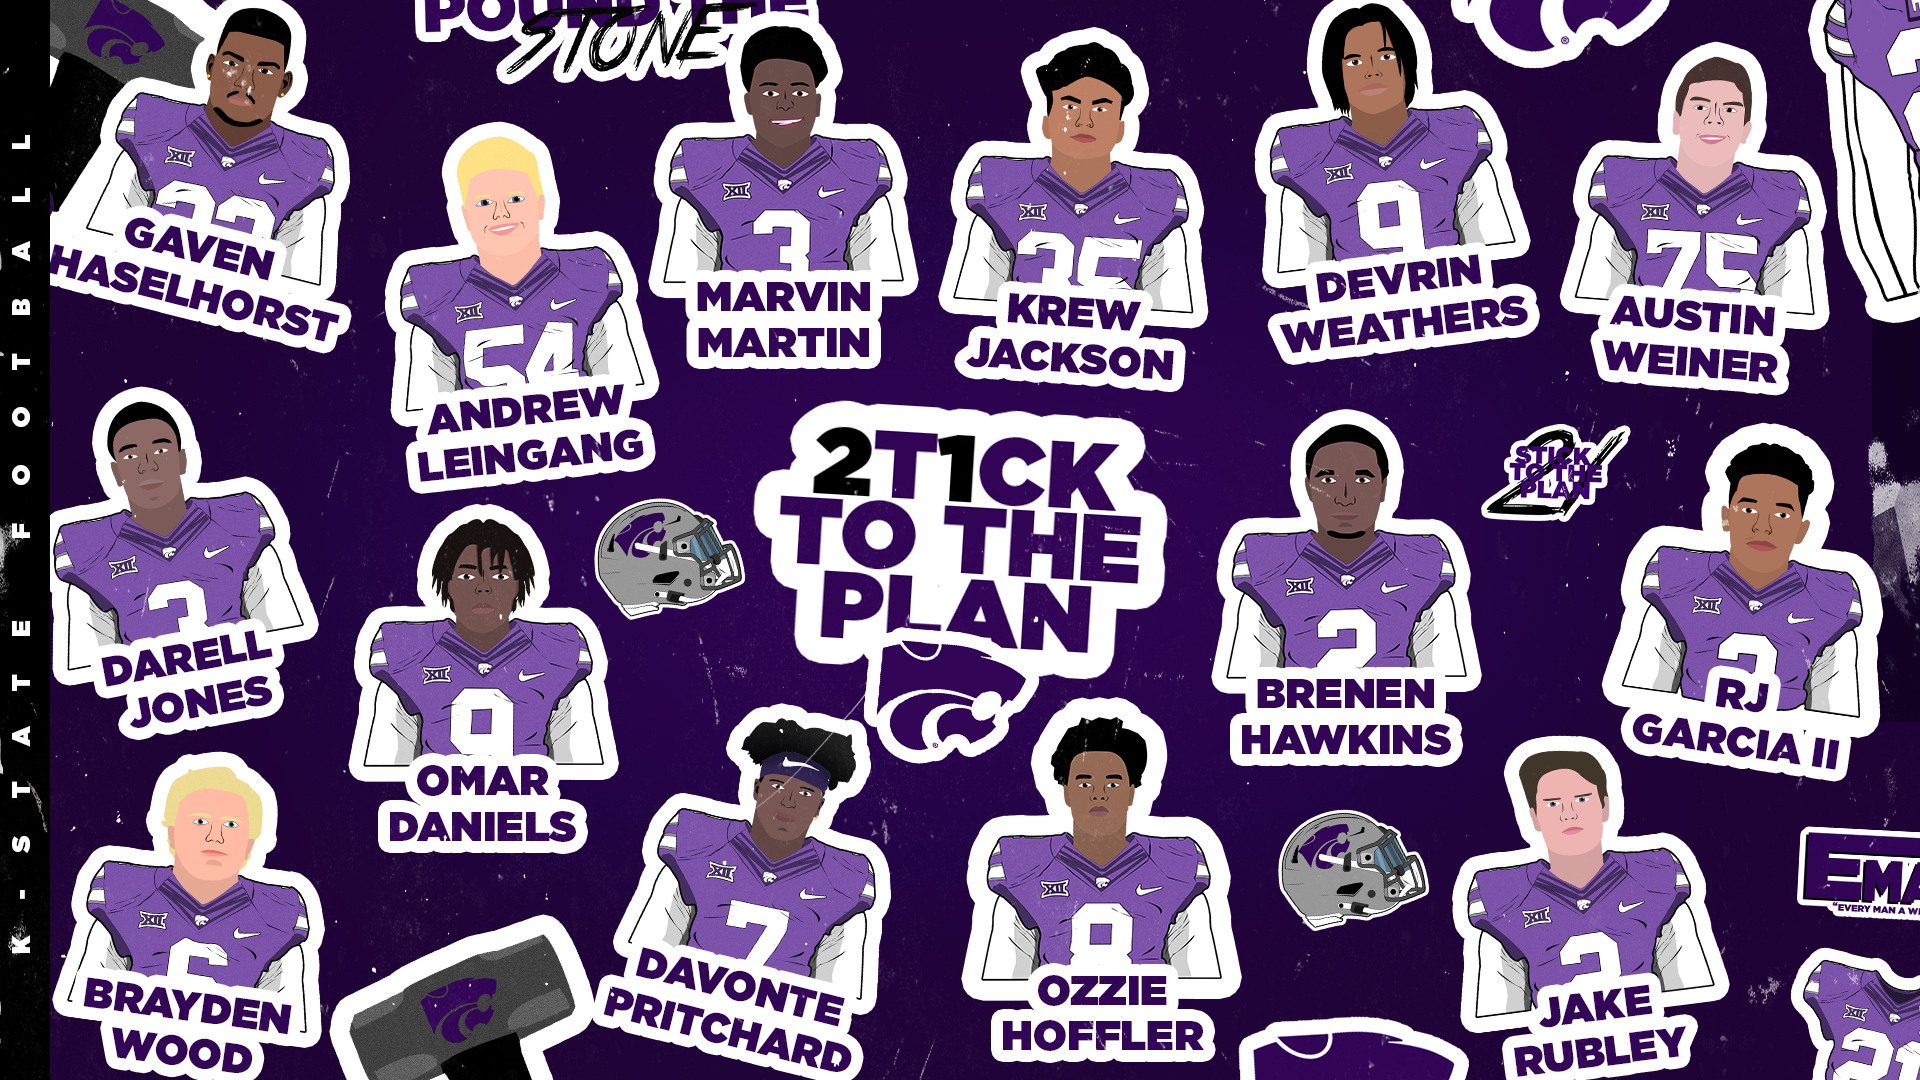 K-State Announces 14 Early Signees - Kansas State University